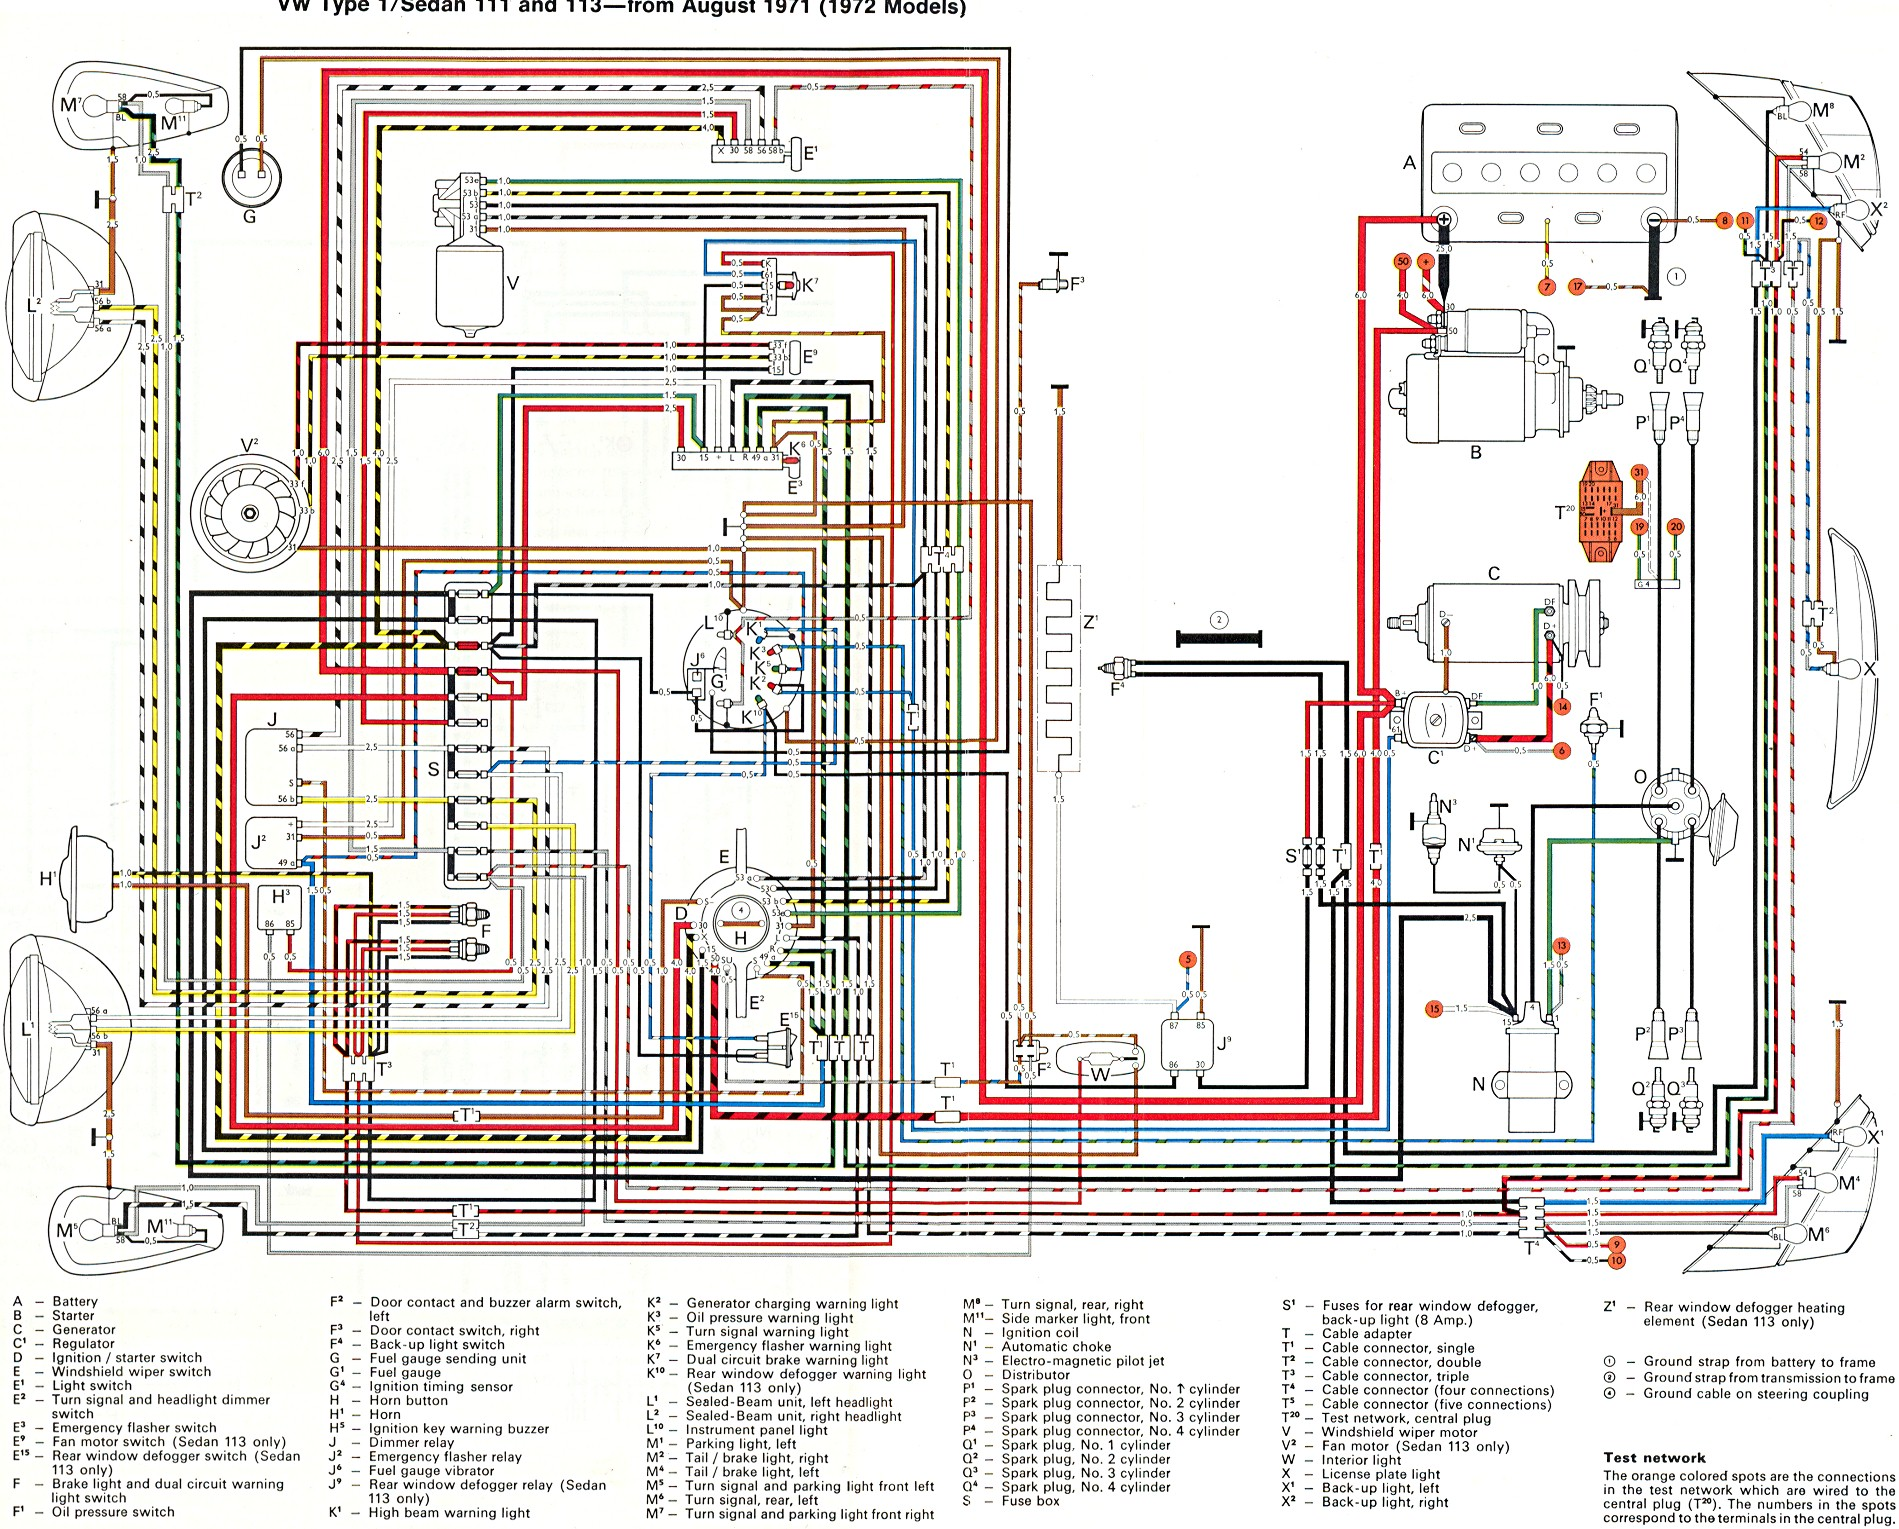 1972 VW Super Beetle Wiring Diagram on 71 beetle wiring diagram